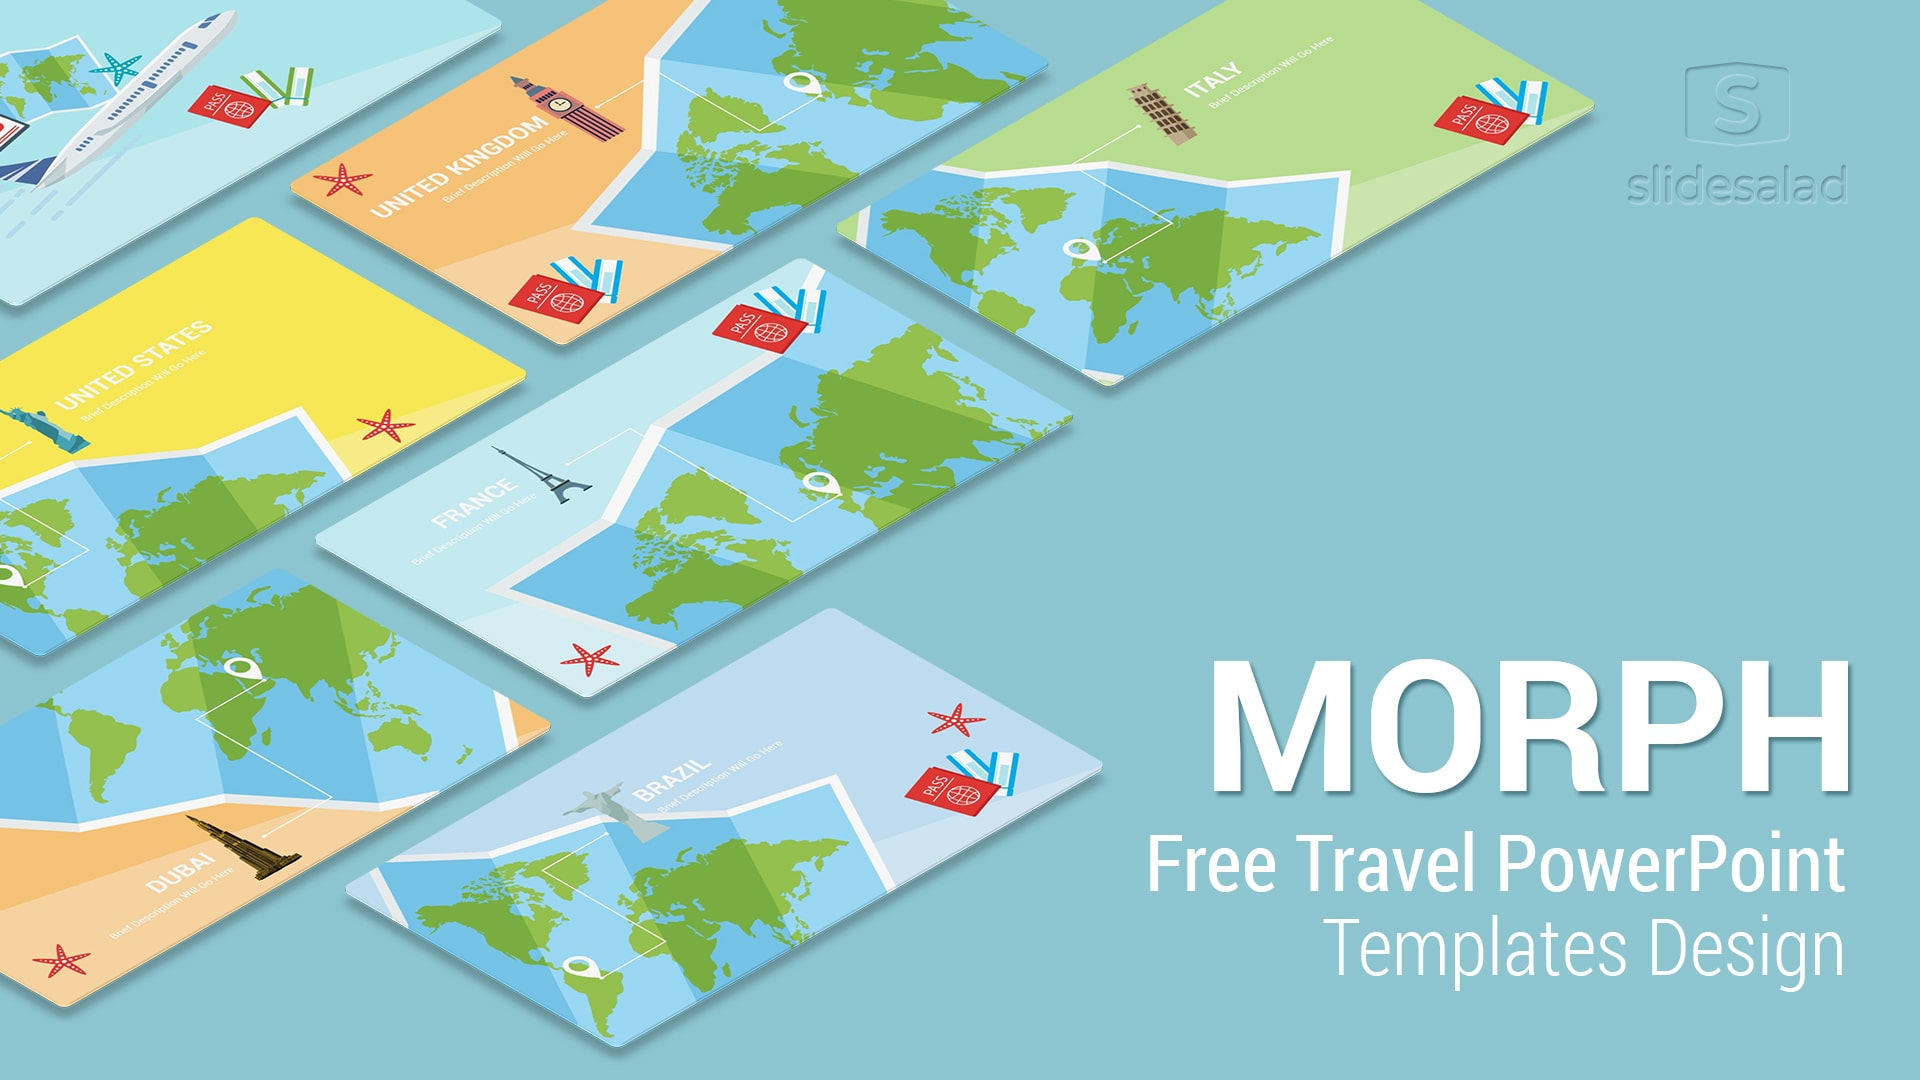 morph travel free download powerpoint templates for presentation